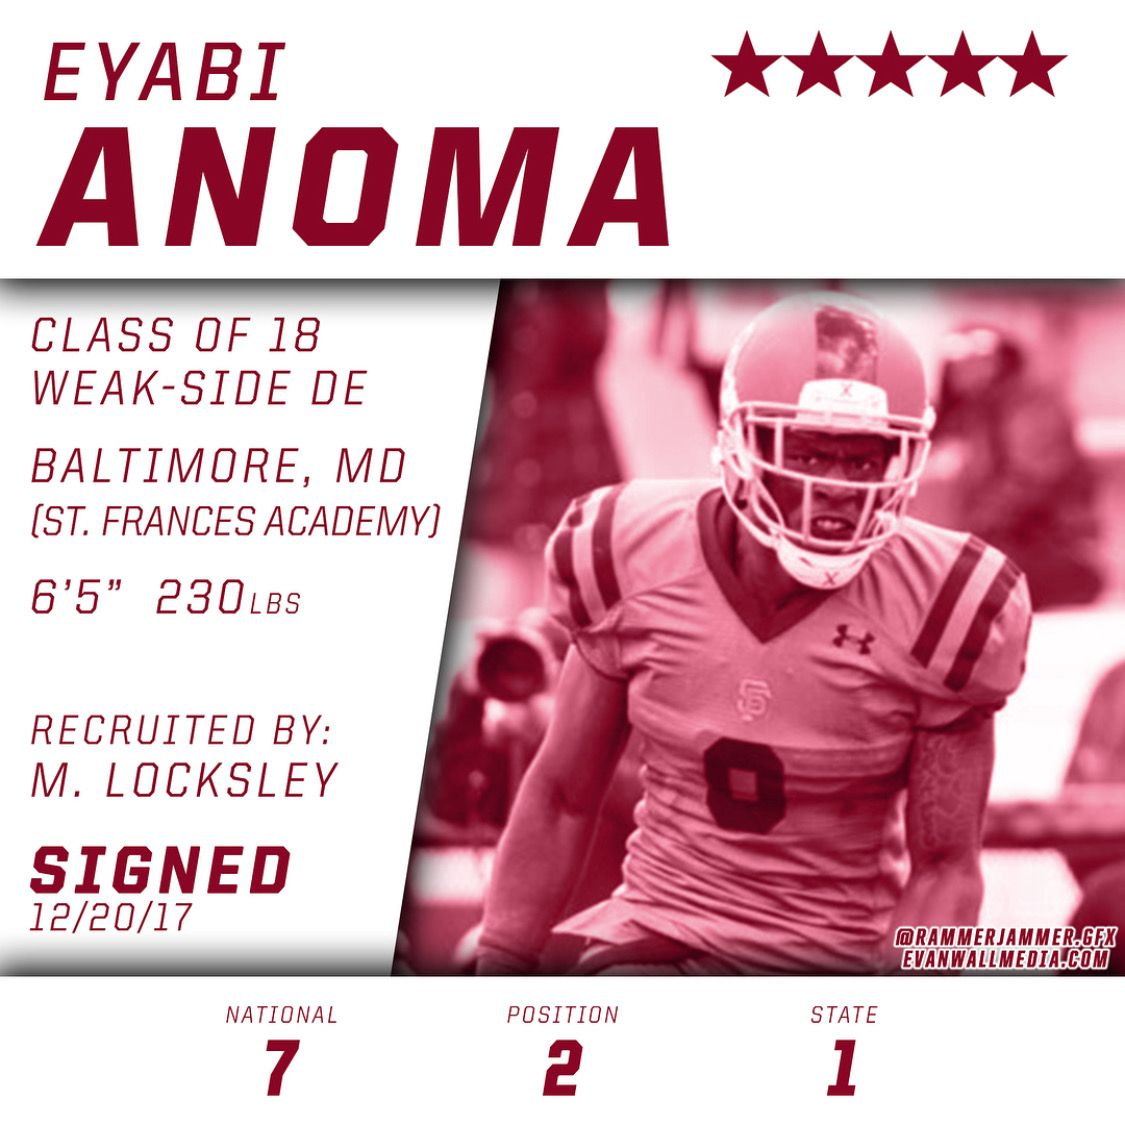 Eyabi Anoma 5 Star De Signed With Alabama Graphic From Rammerjammer Gfx On Instagram Alaba Alabama Football Team Alabama Football Roll Tide Alabama Football